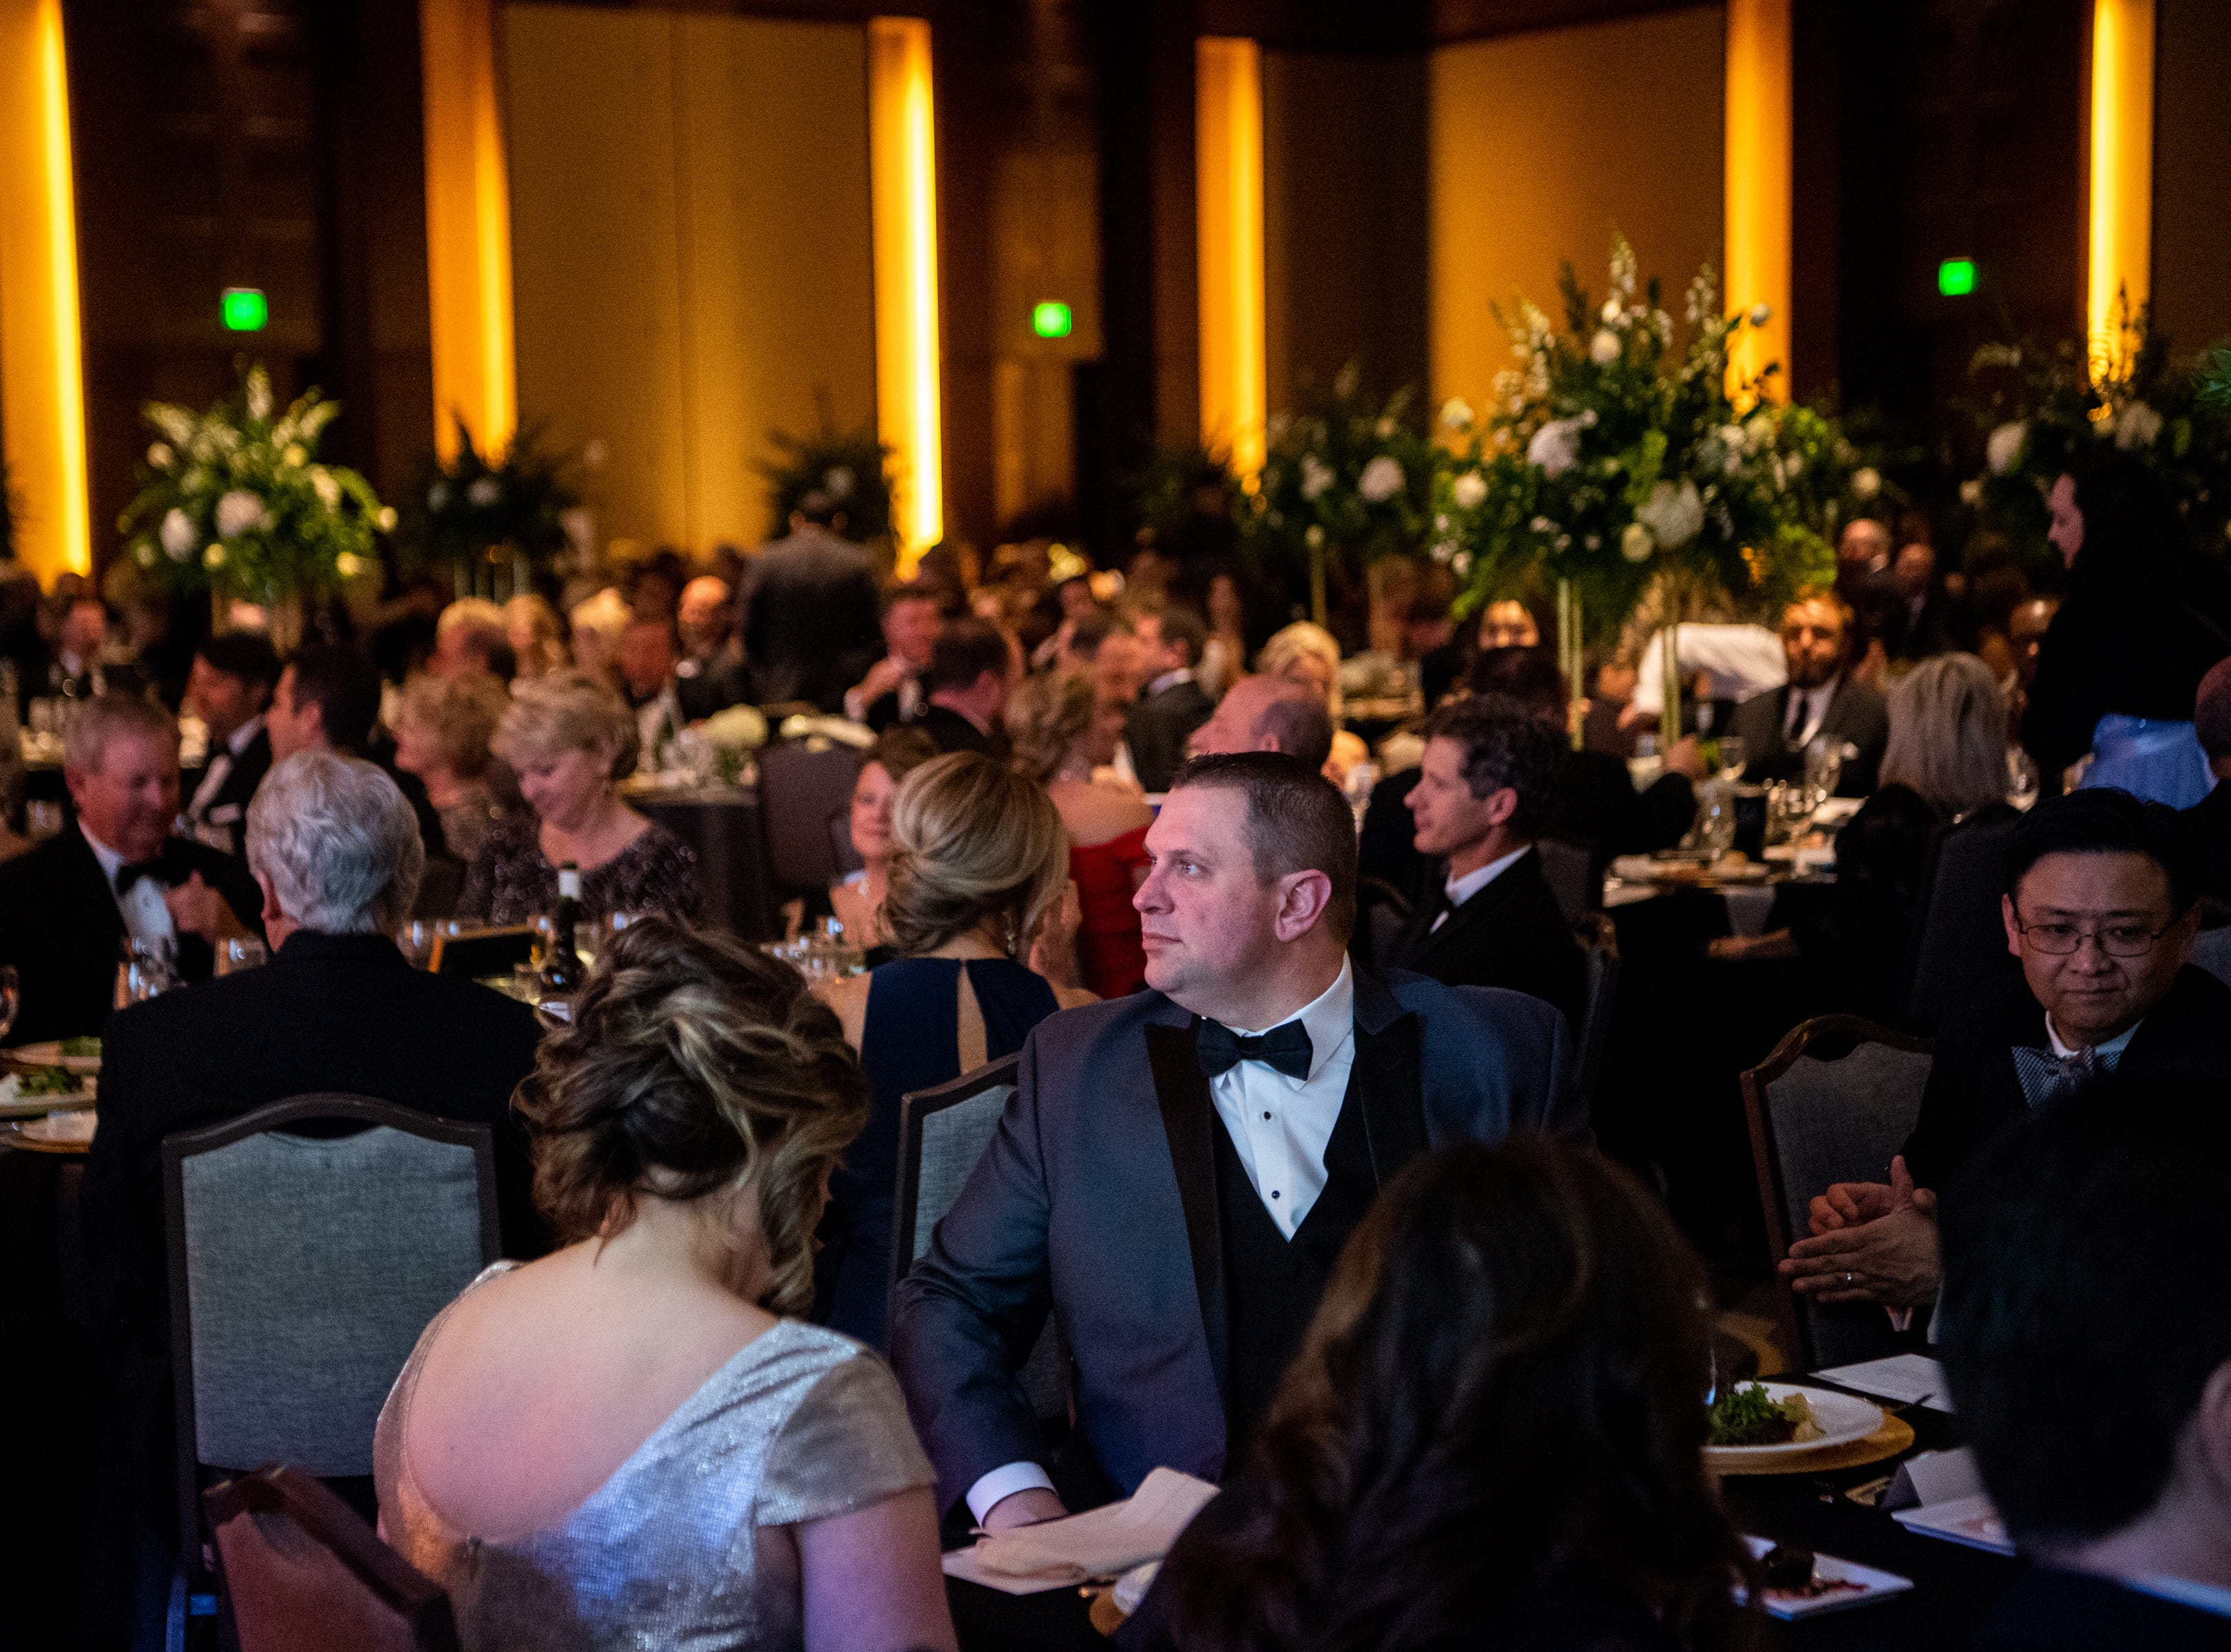 People gather for the Austin Peay State University's annual Candlelight Ball at the Omni Nashville Hotel Saturday, March 16, 2019, in Nashville, Tenn.